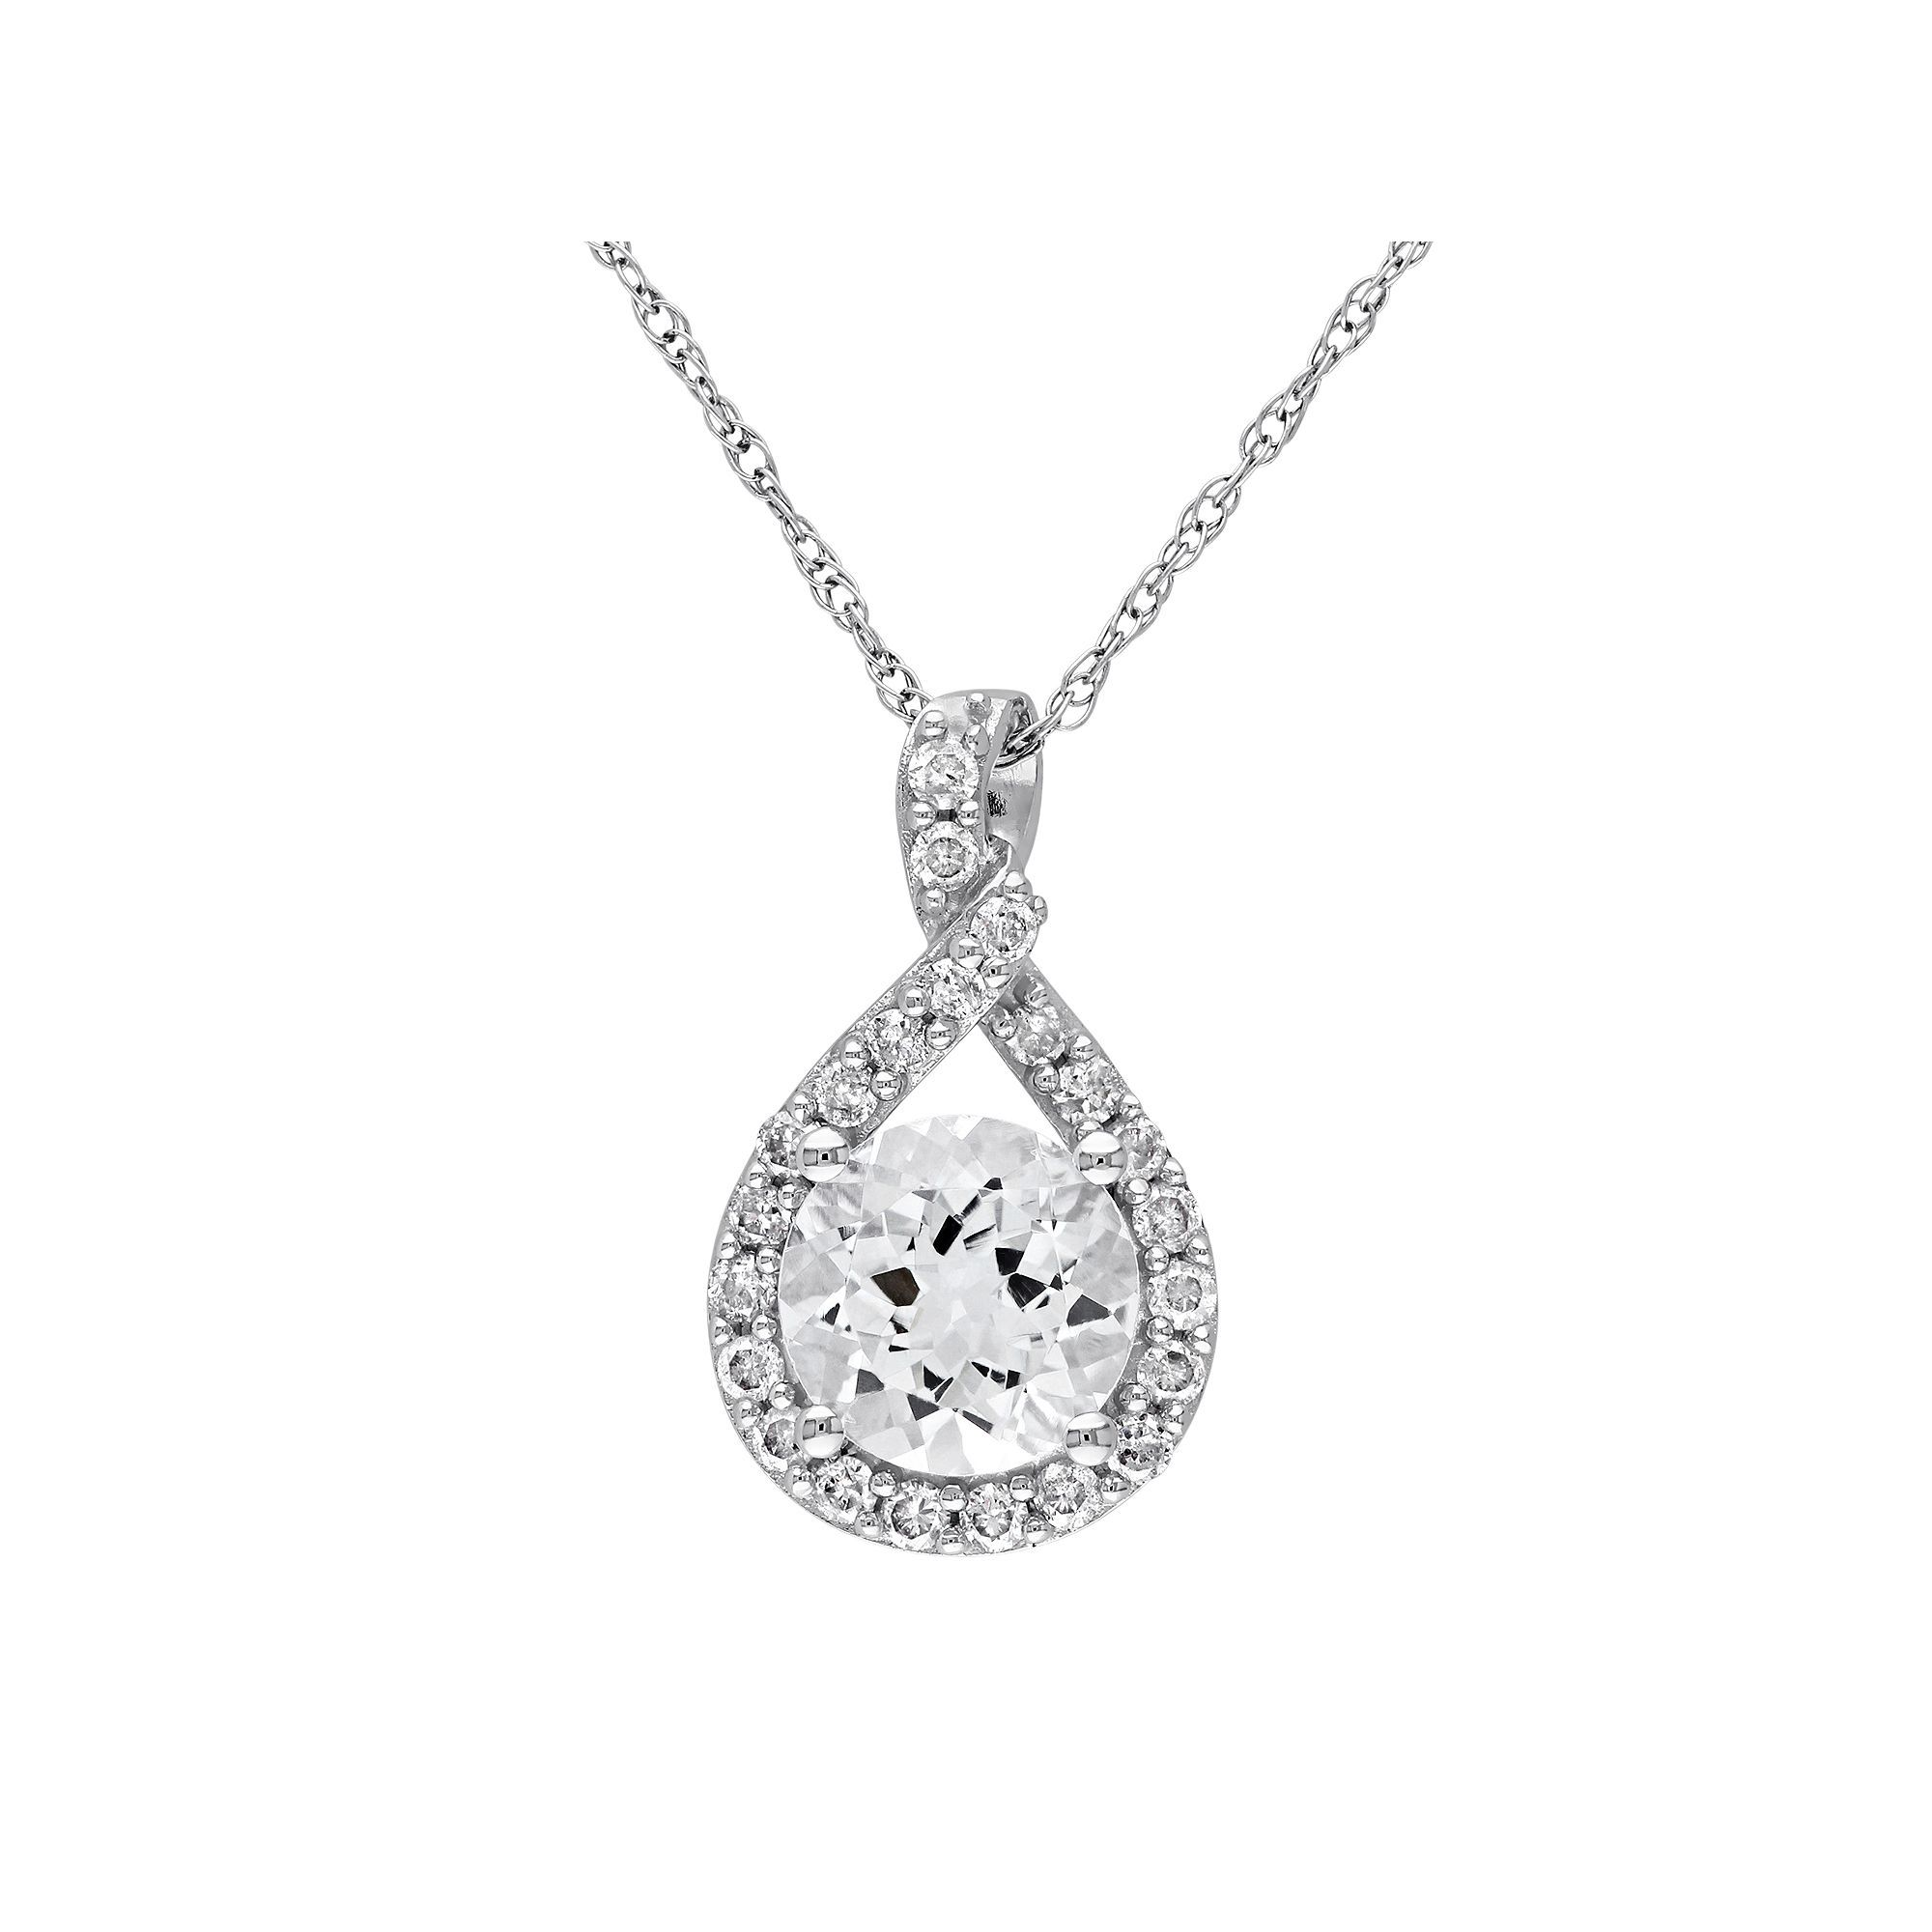 set pendant w bezel pin girl t necklace sterling s ct cut gold round silver in cz infinity